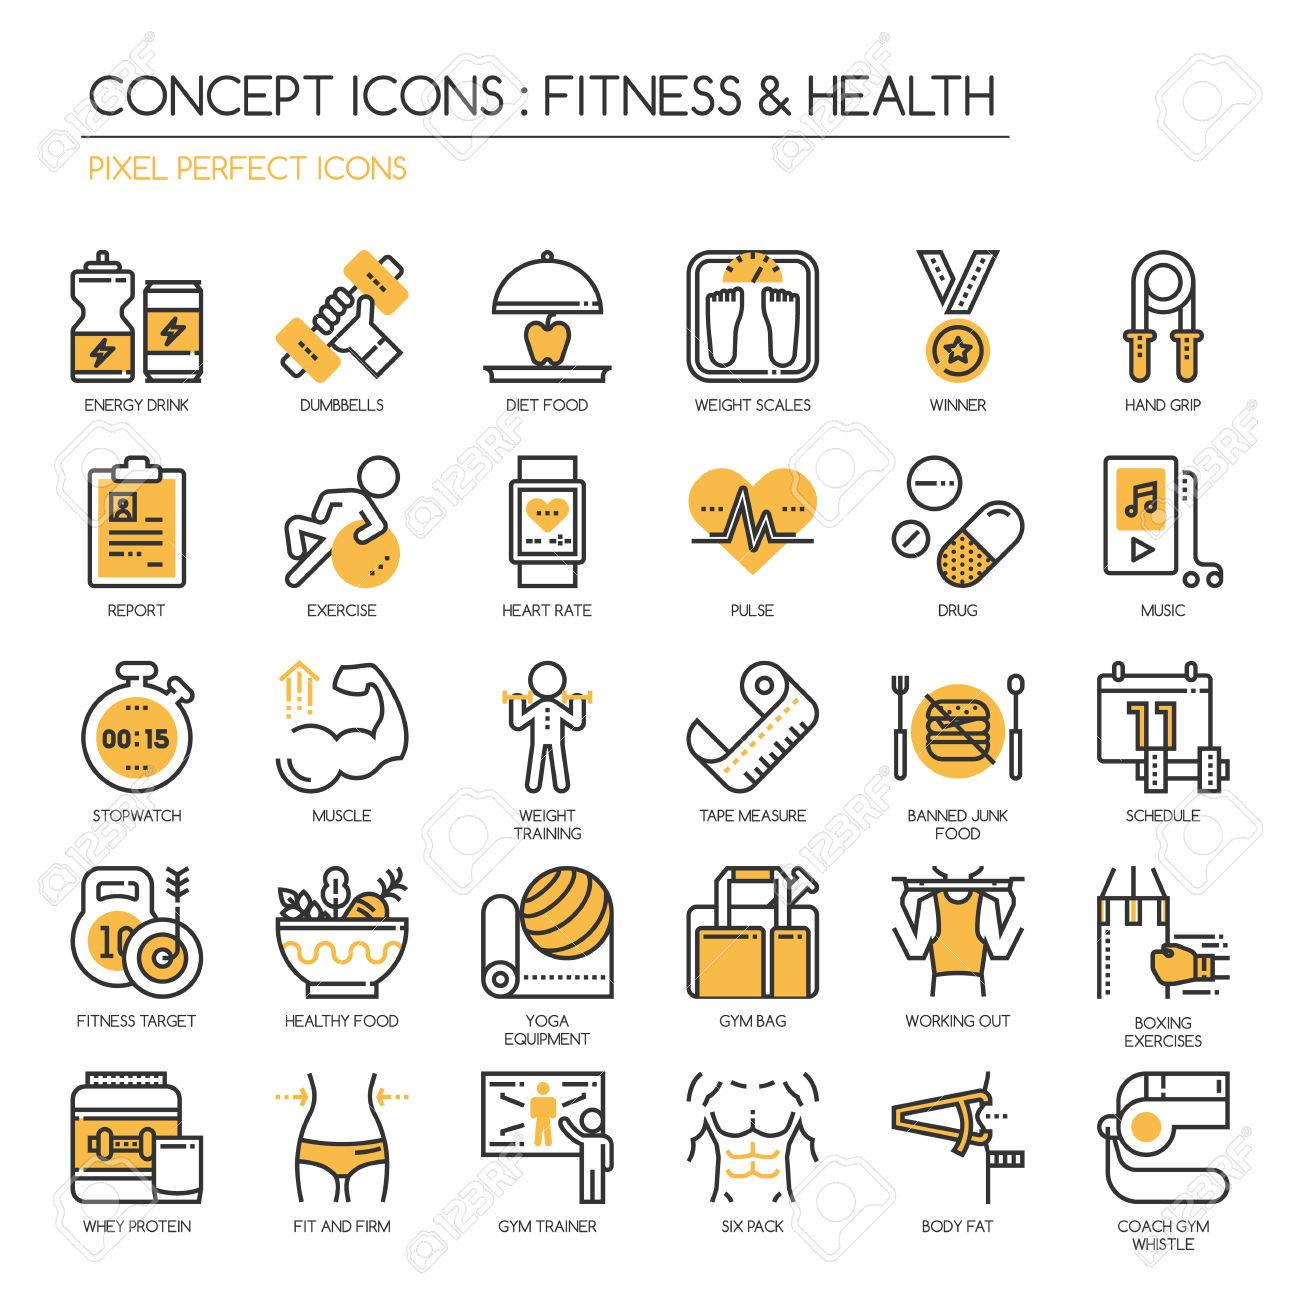 Fitness & Health , thin line icons set ,pixel perfect icon - 57266975